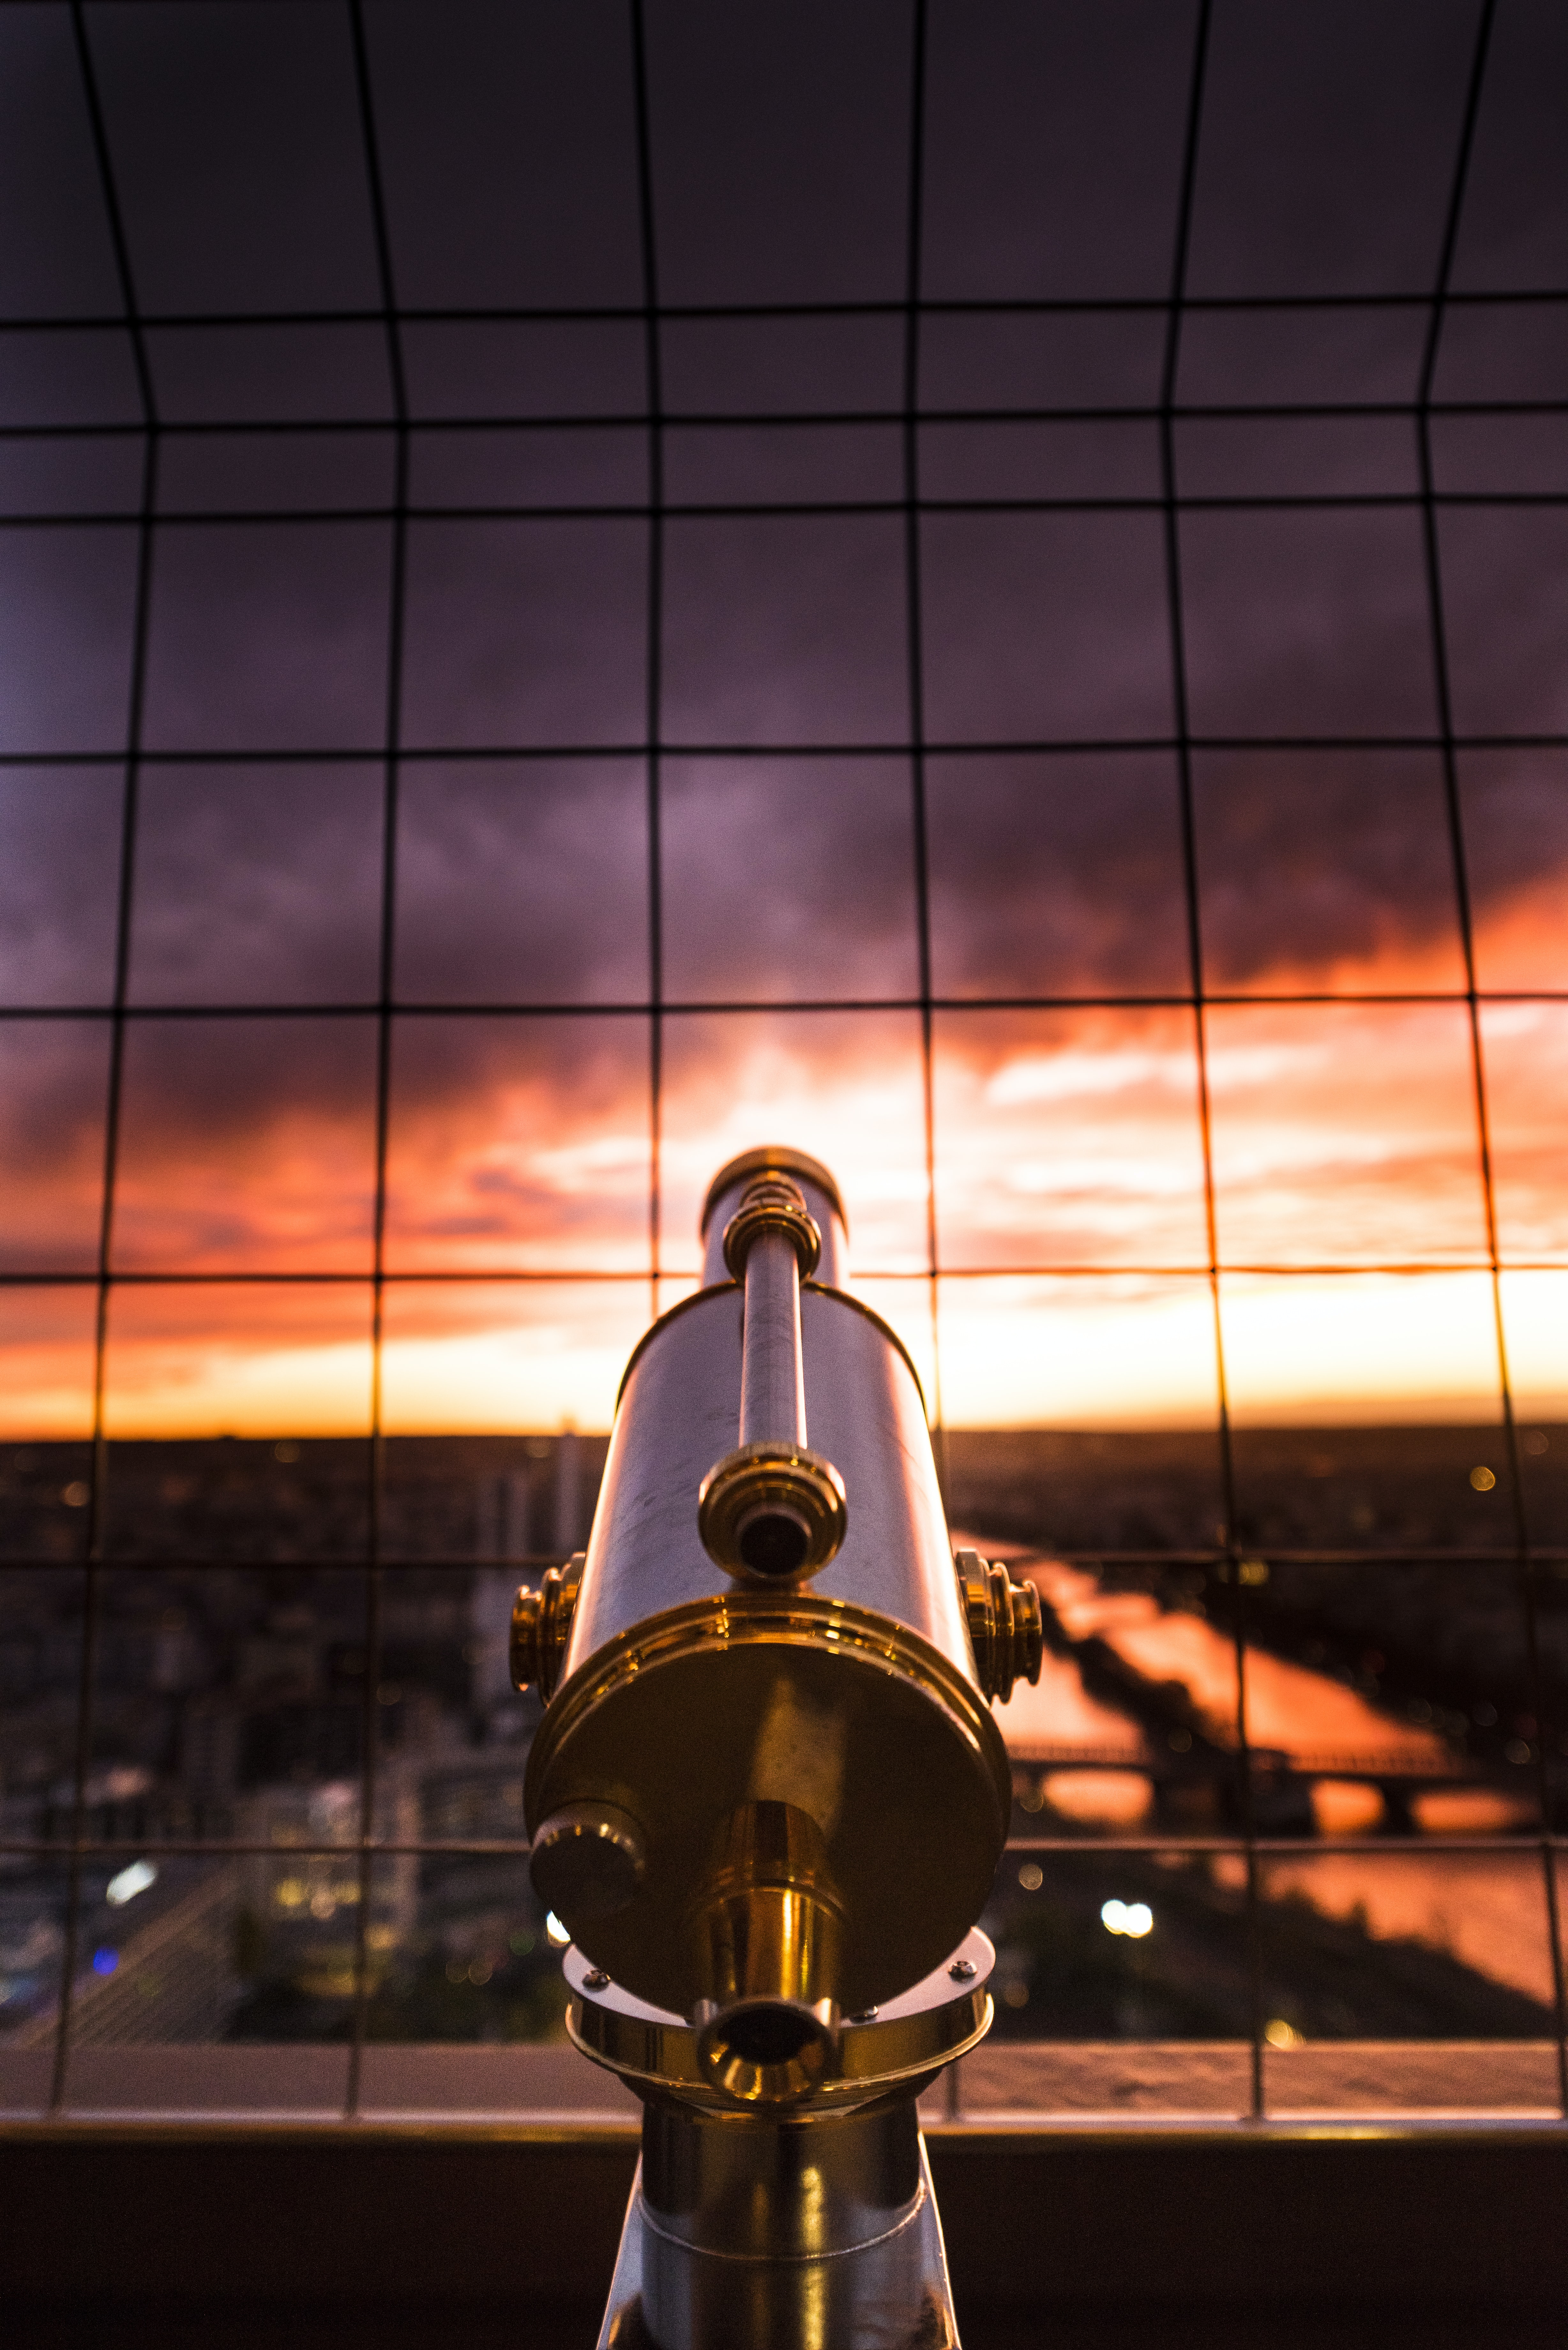 Looking at the sunset behind a telescope in Paris.